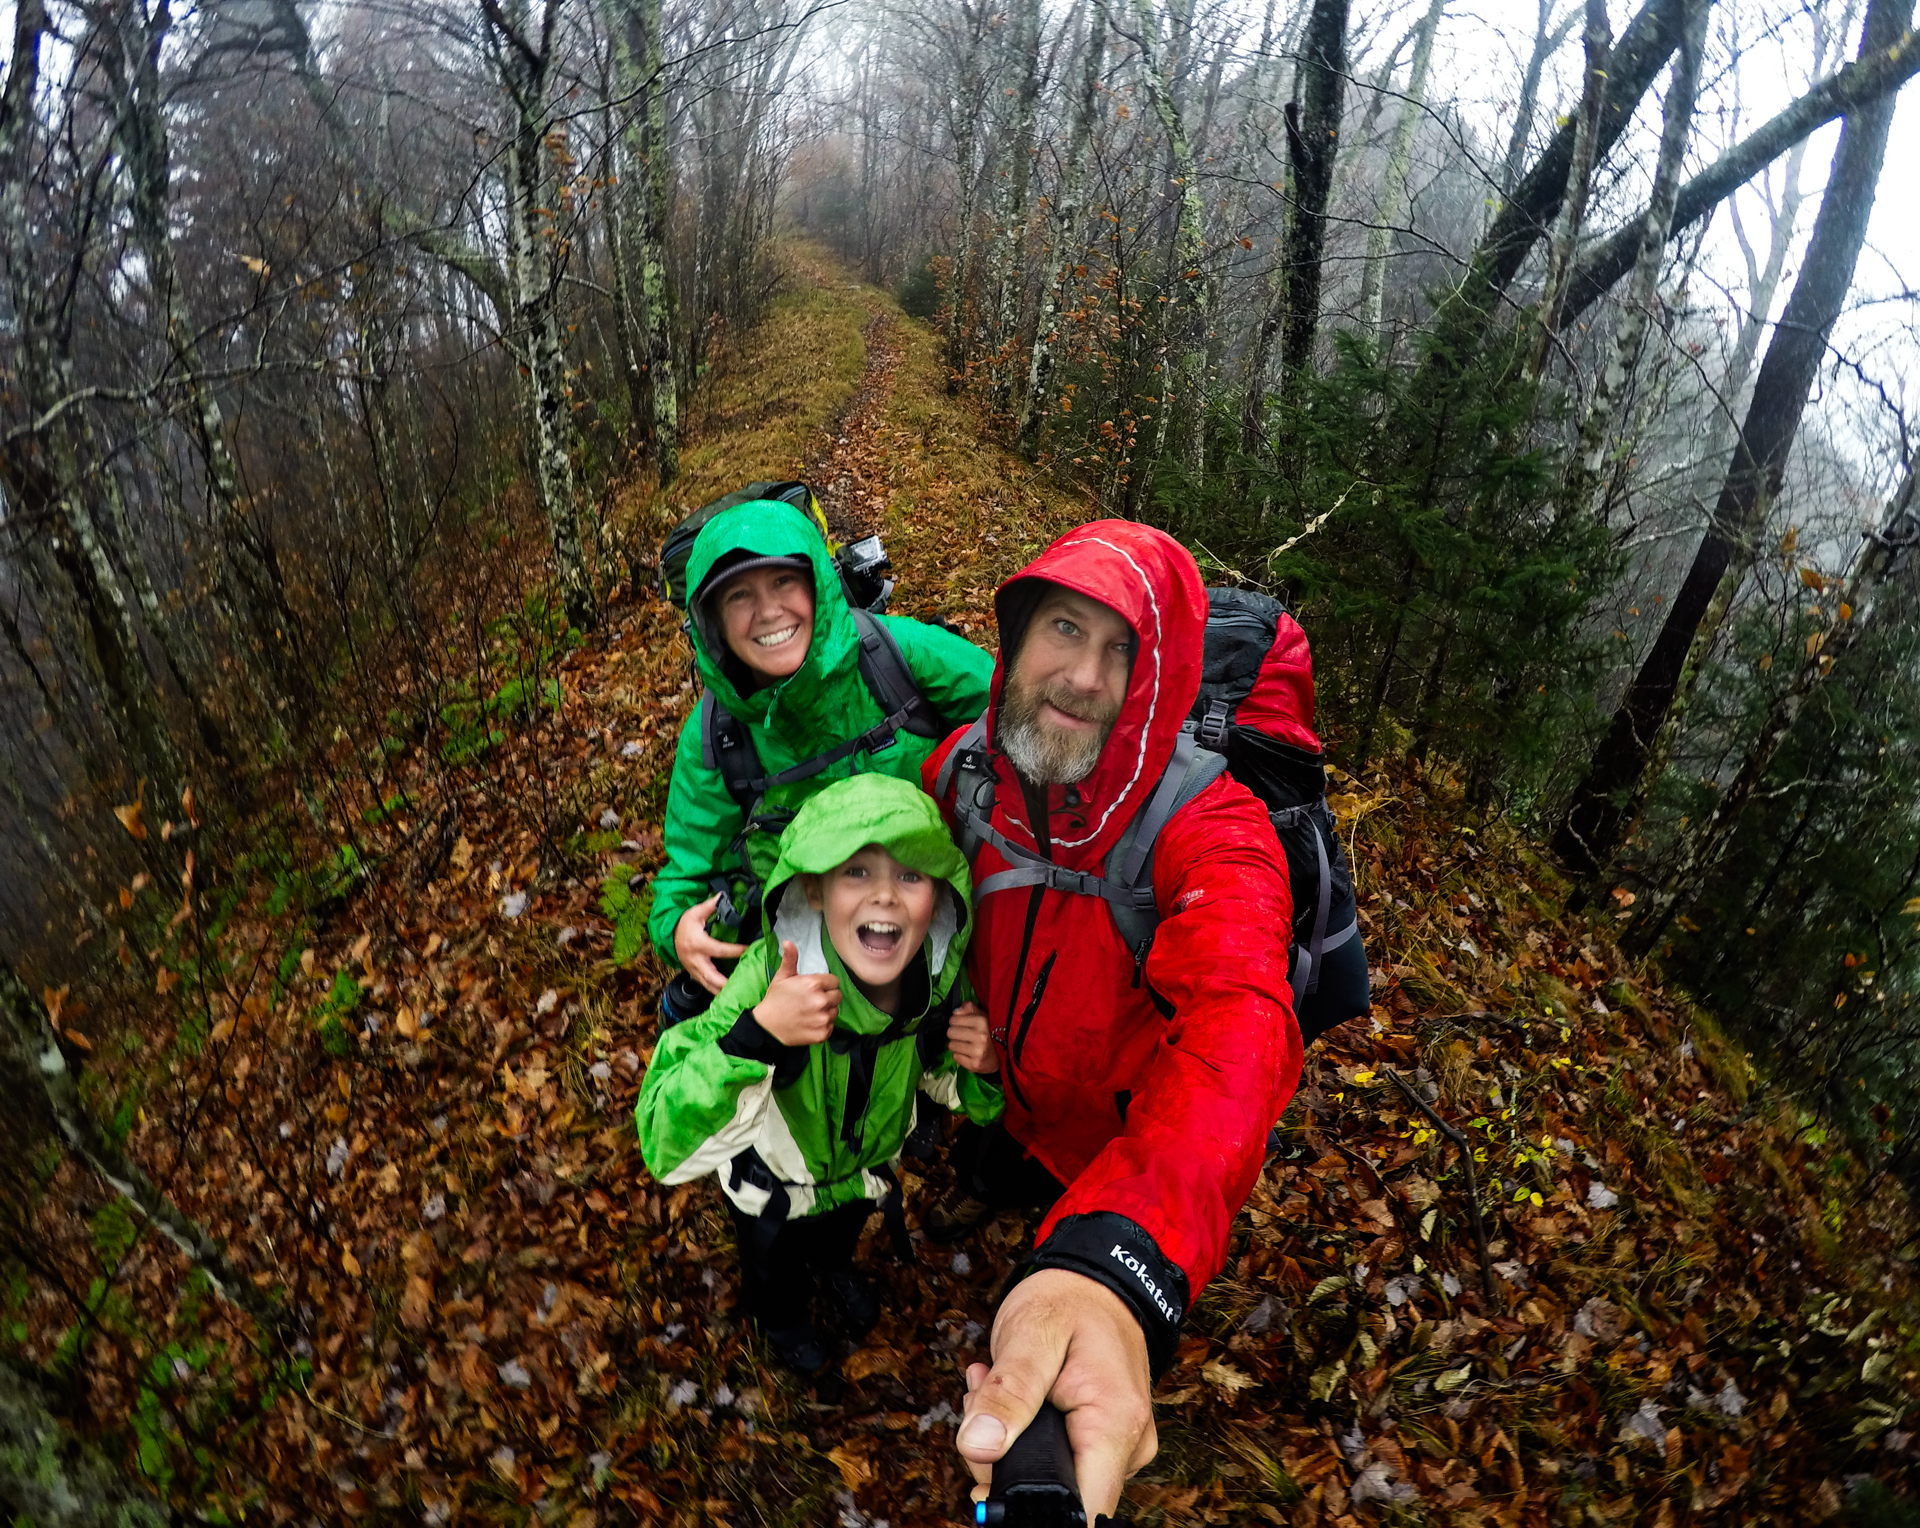 Family taking selfie on leaf covered trail with bare trees and fog surrounding.